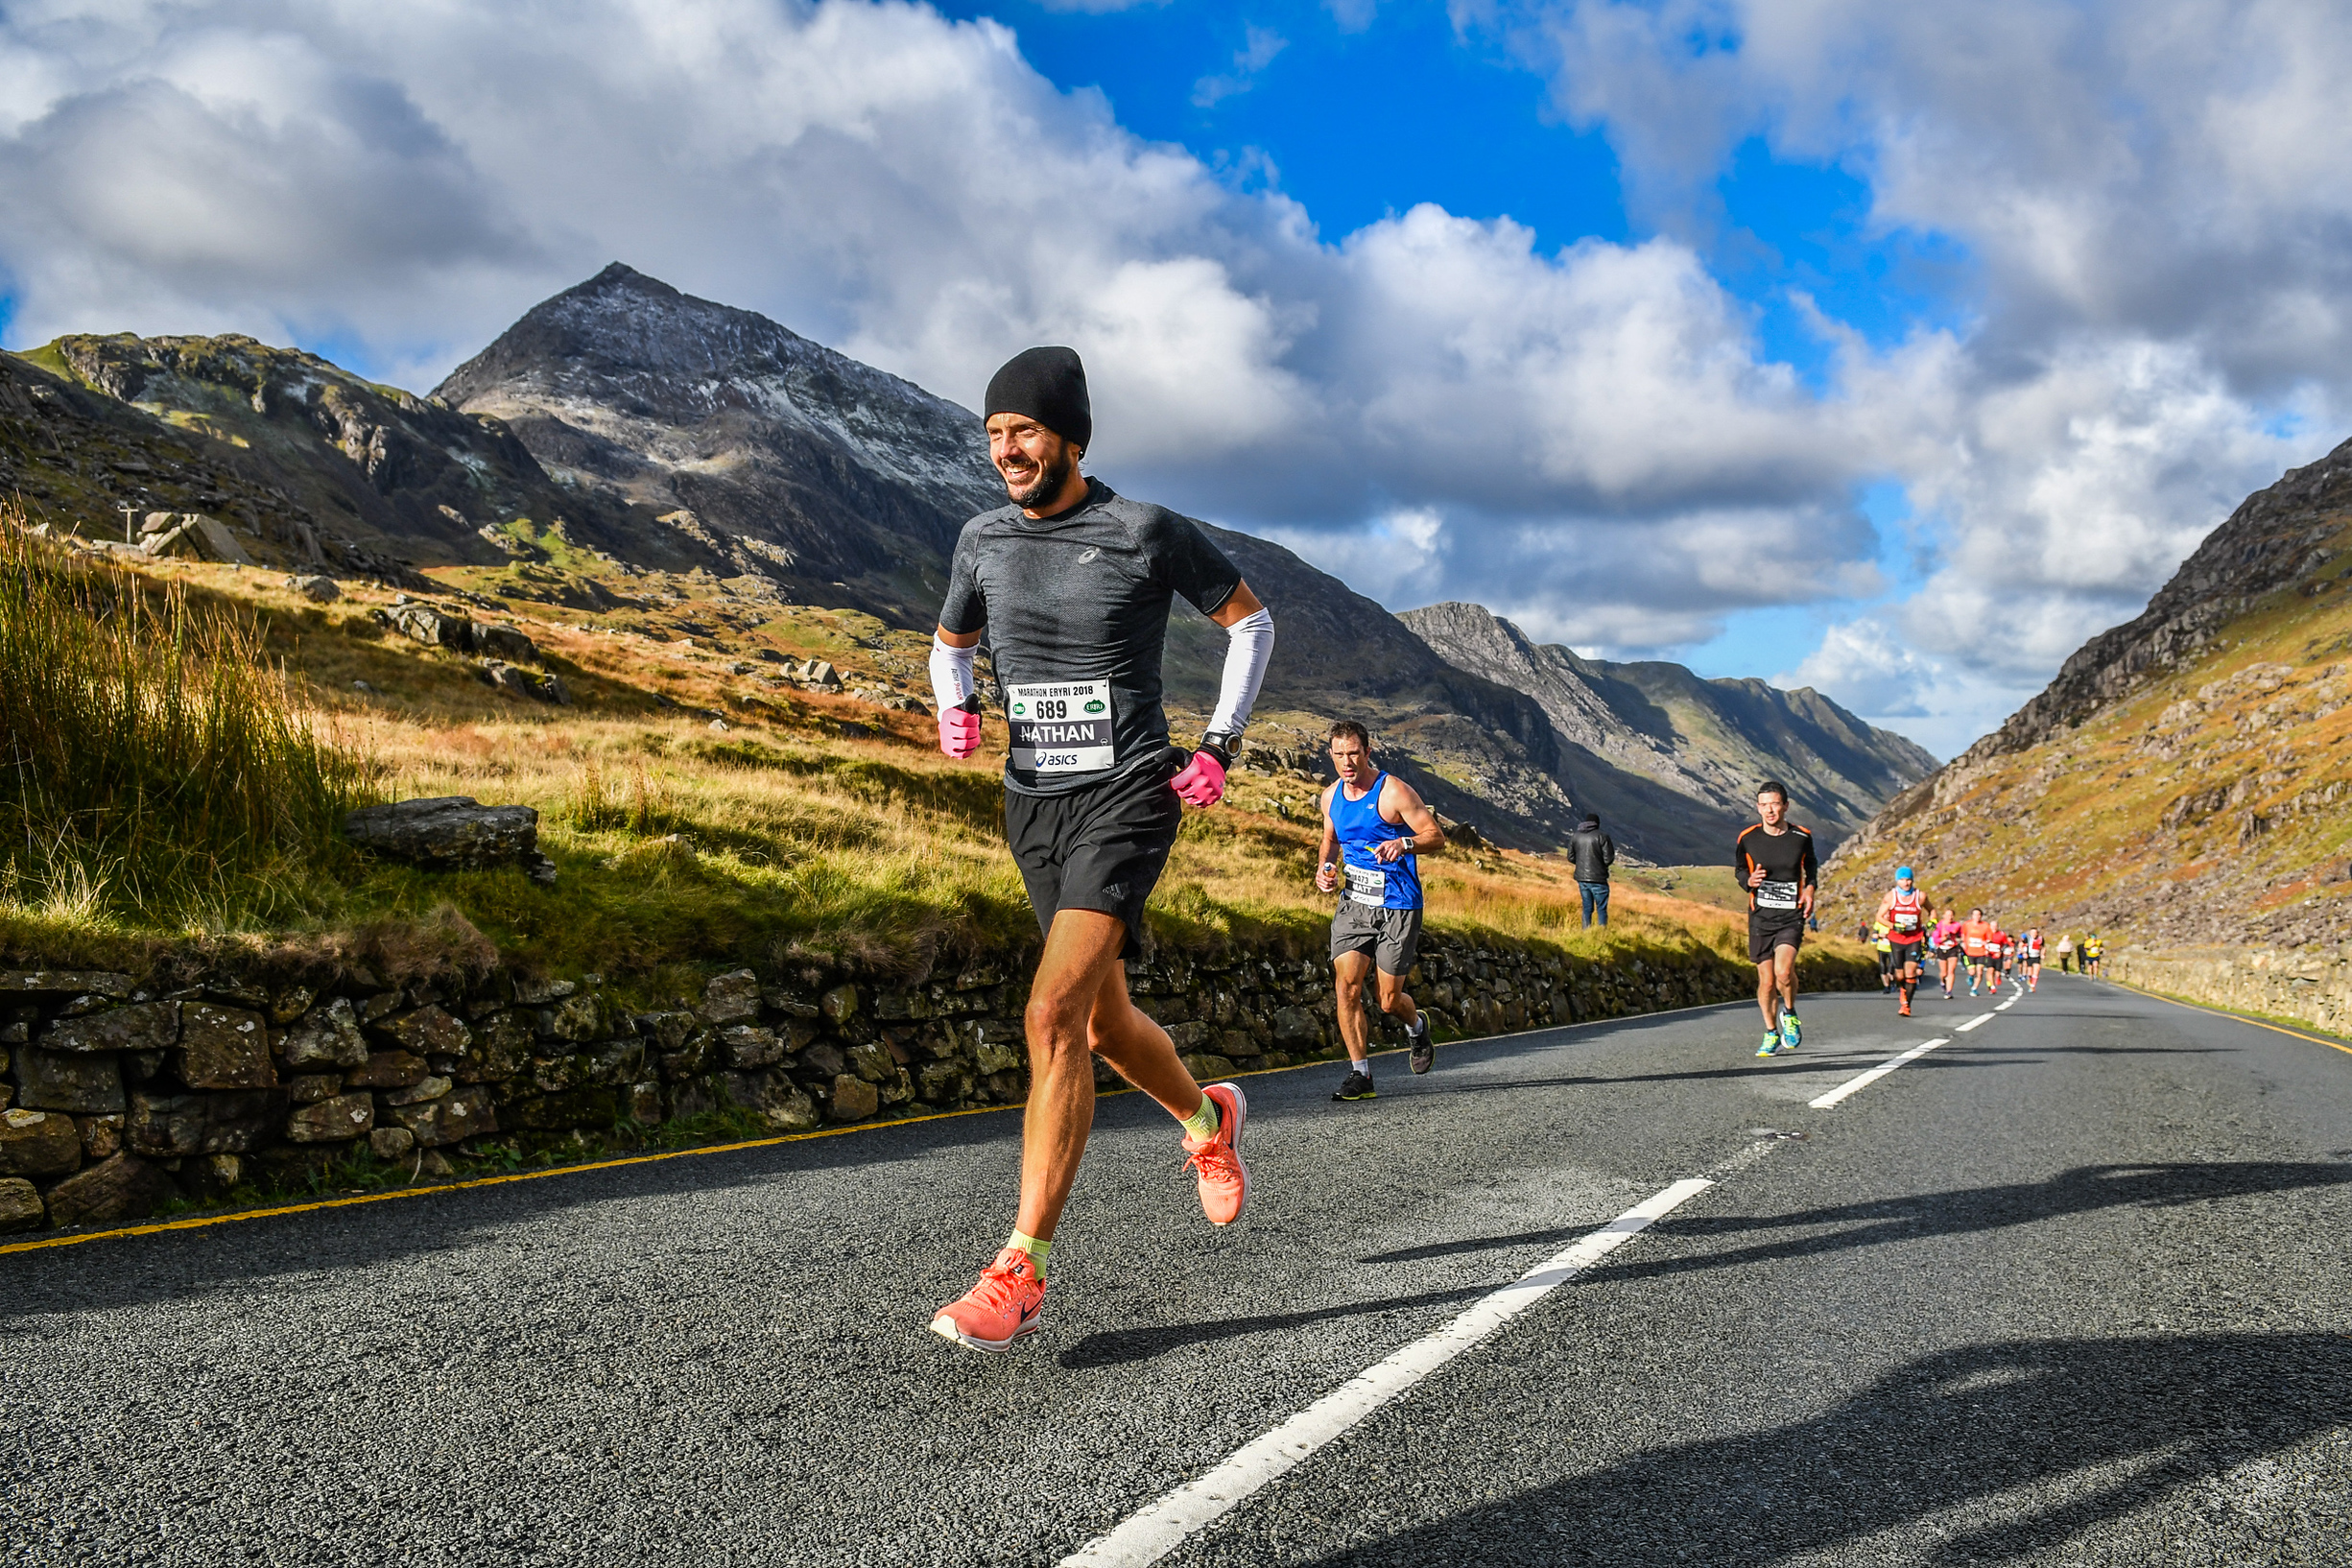 Want to improve as a runner? Slow Down!